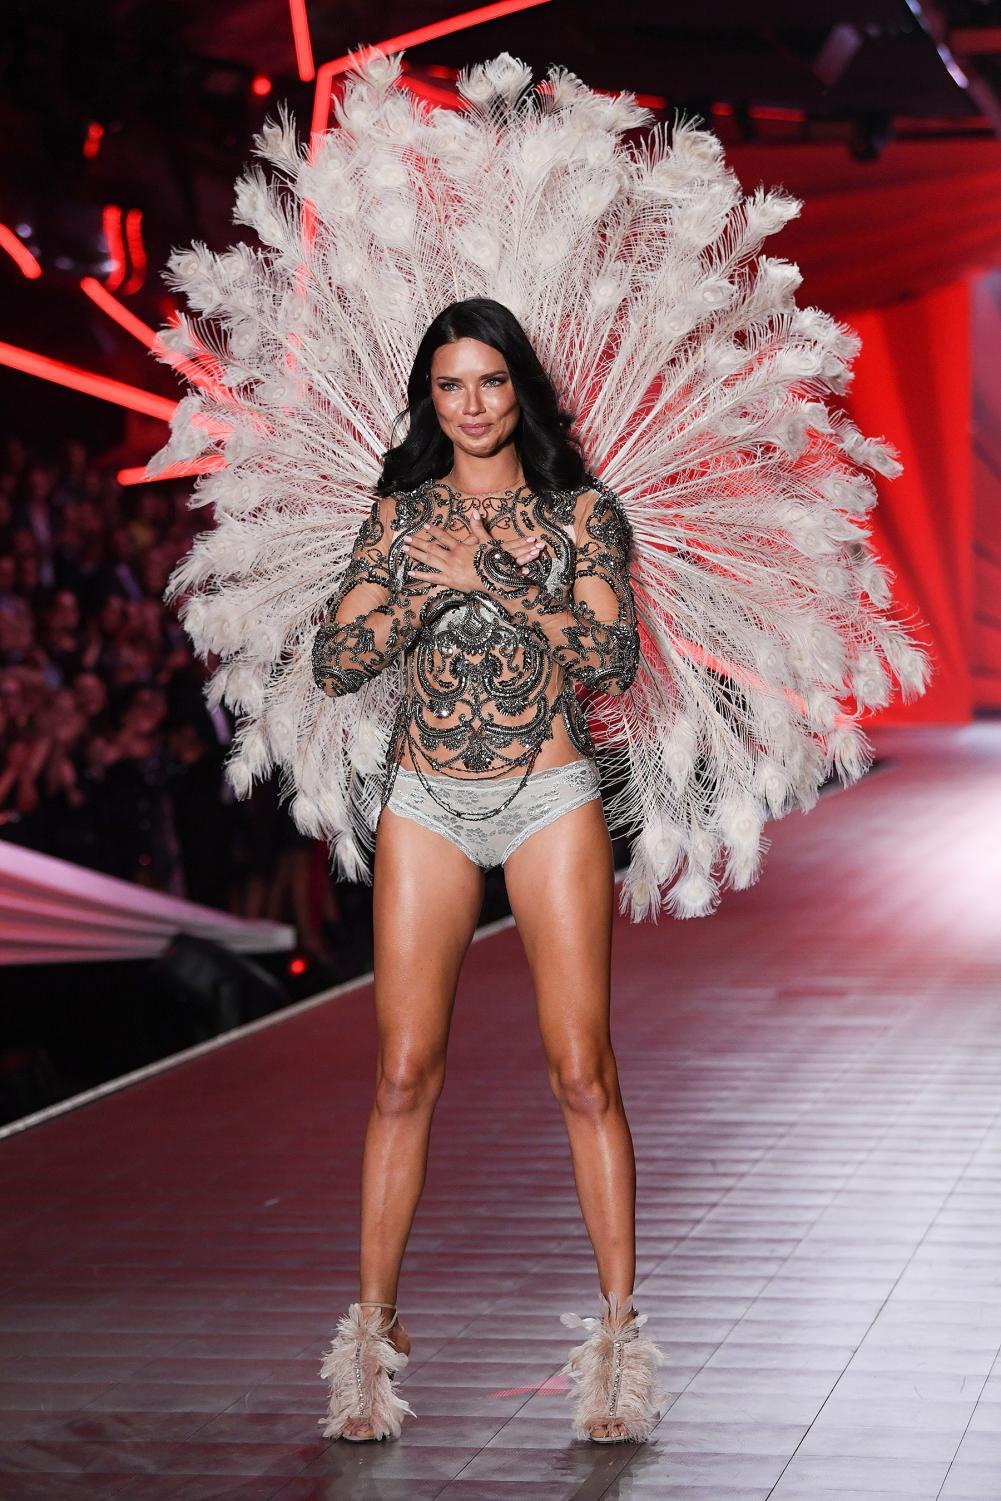 After 17 shows, Adriana Lima has hung up her wings and walked in her last show on Nov. 8. Lima has been a staple in Victoria Secret.